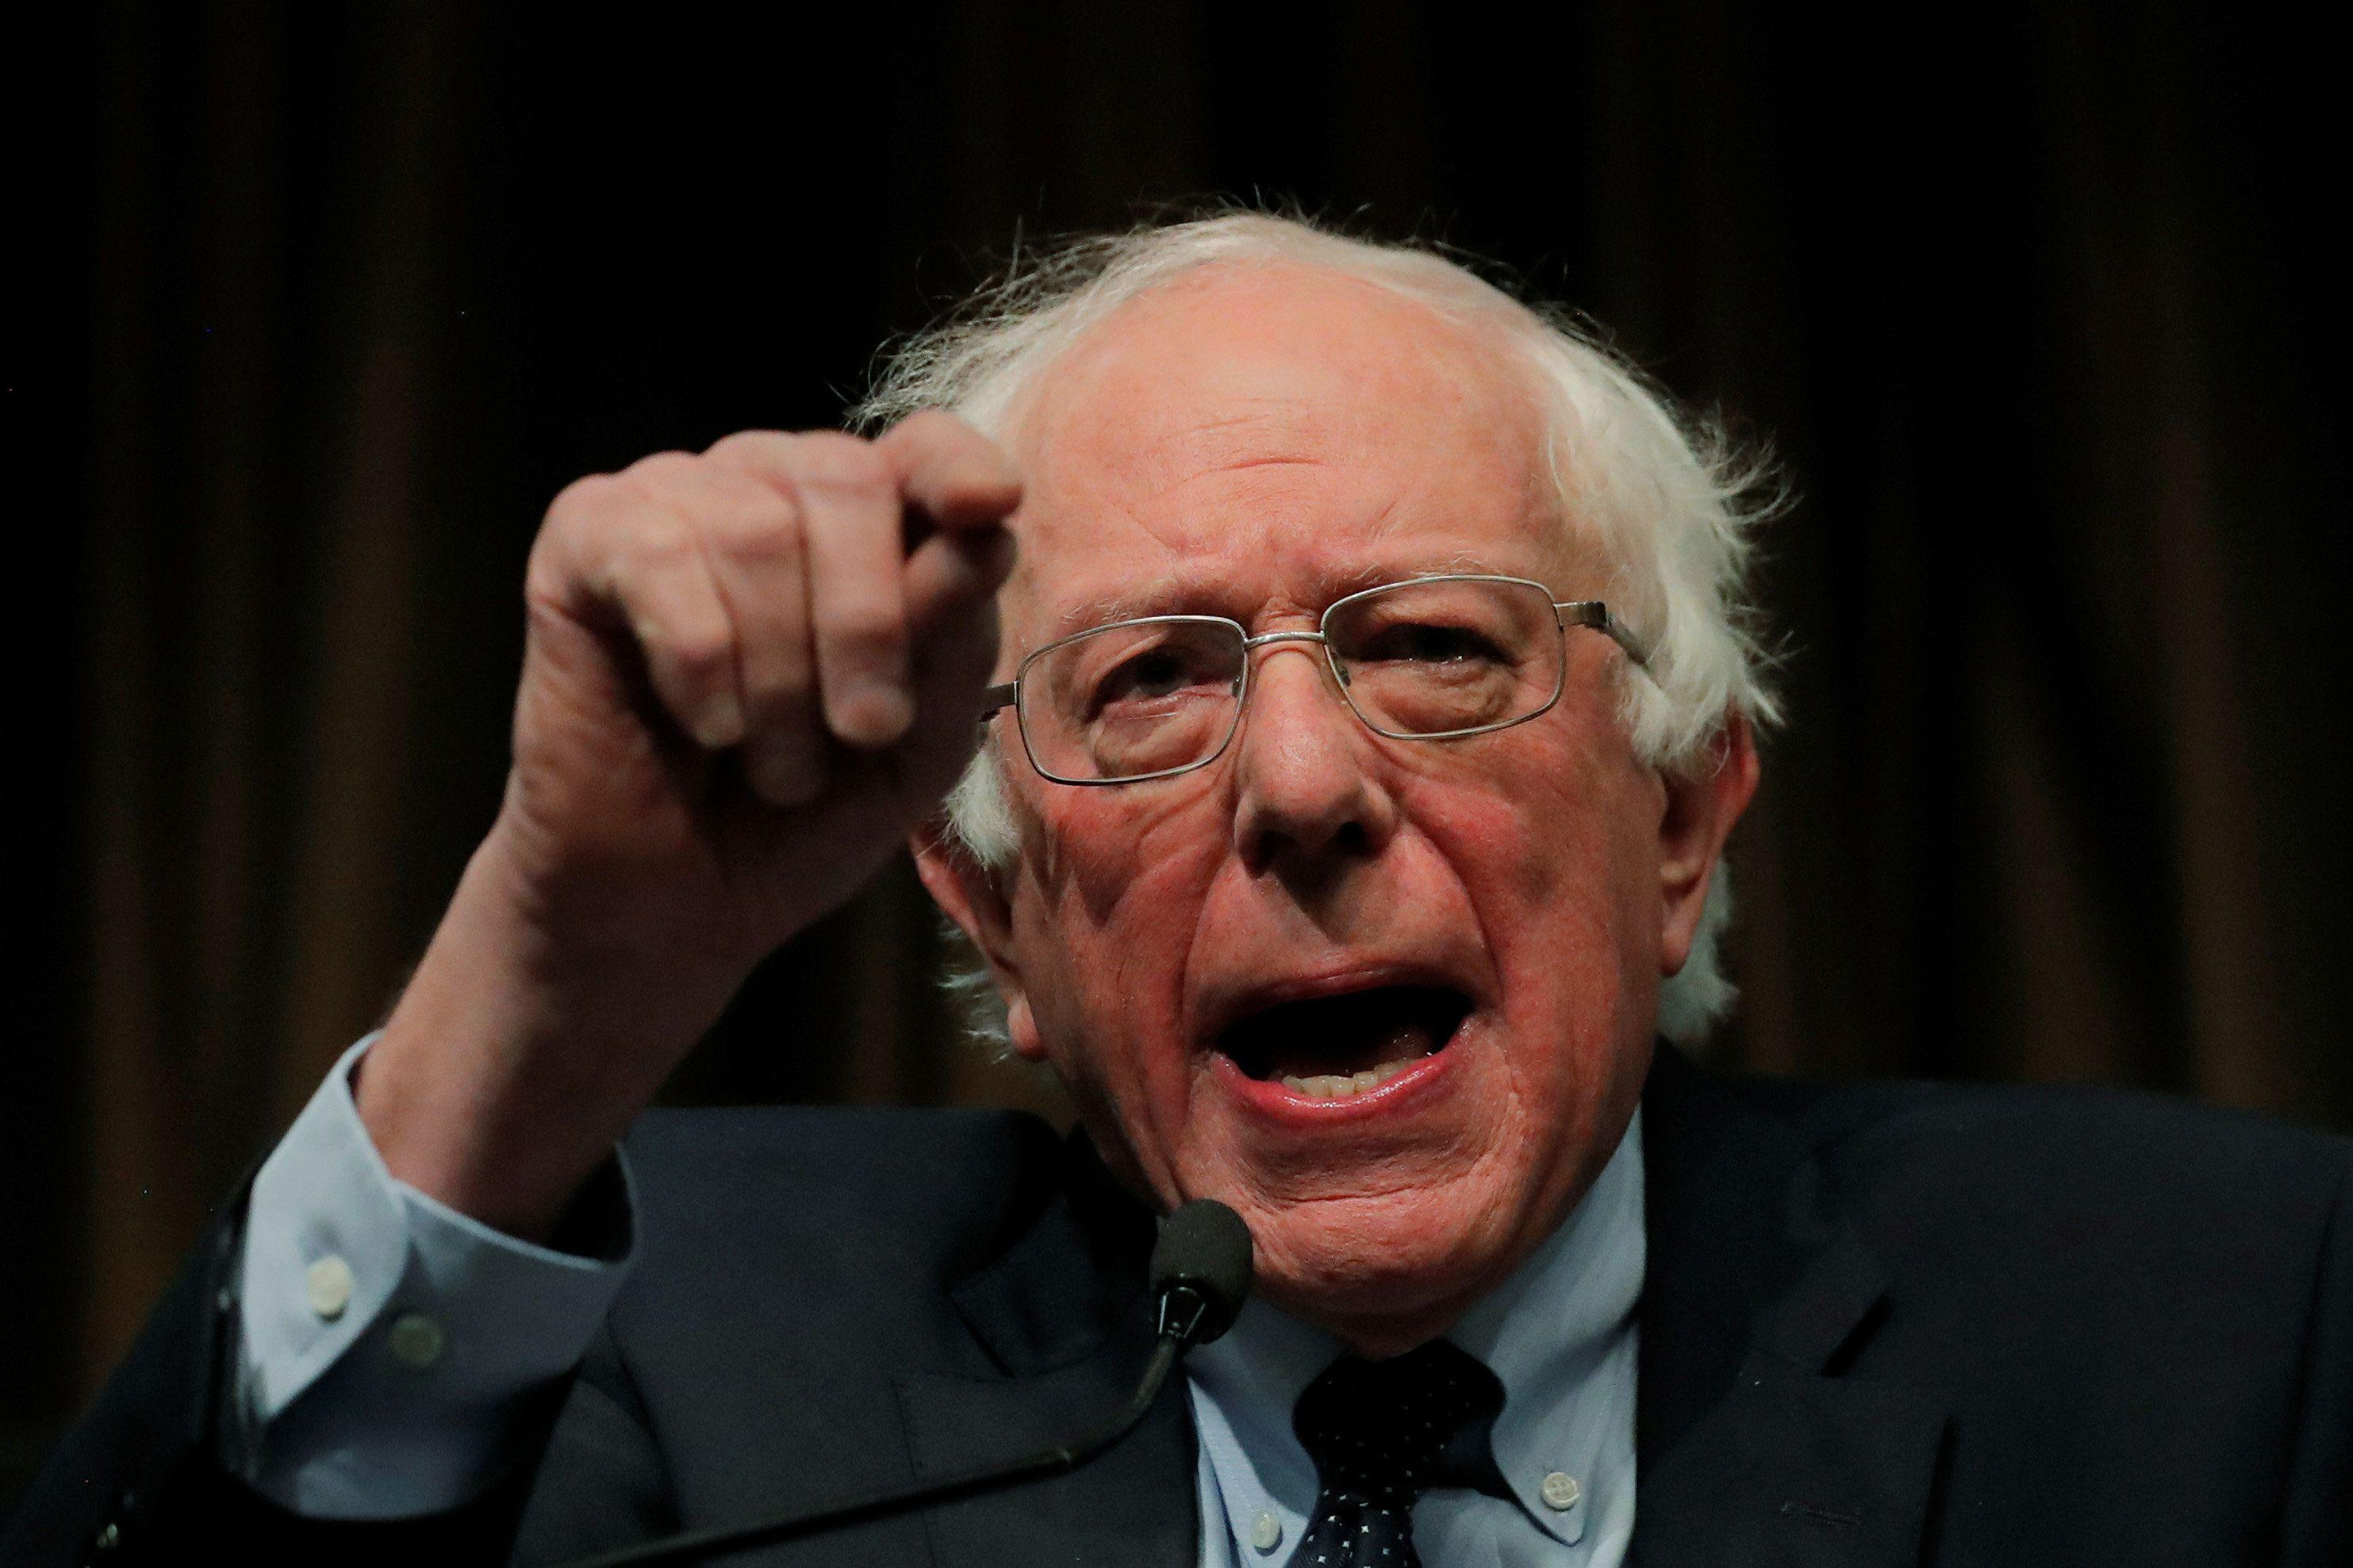 Bernie Sanders says 'there should be a study' on slavery reparations